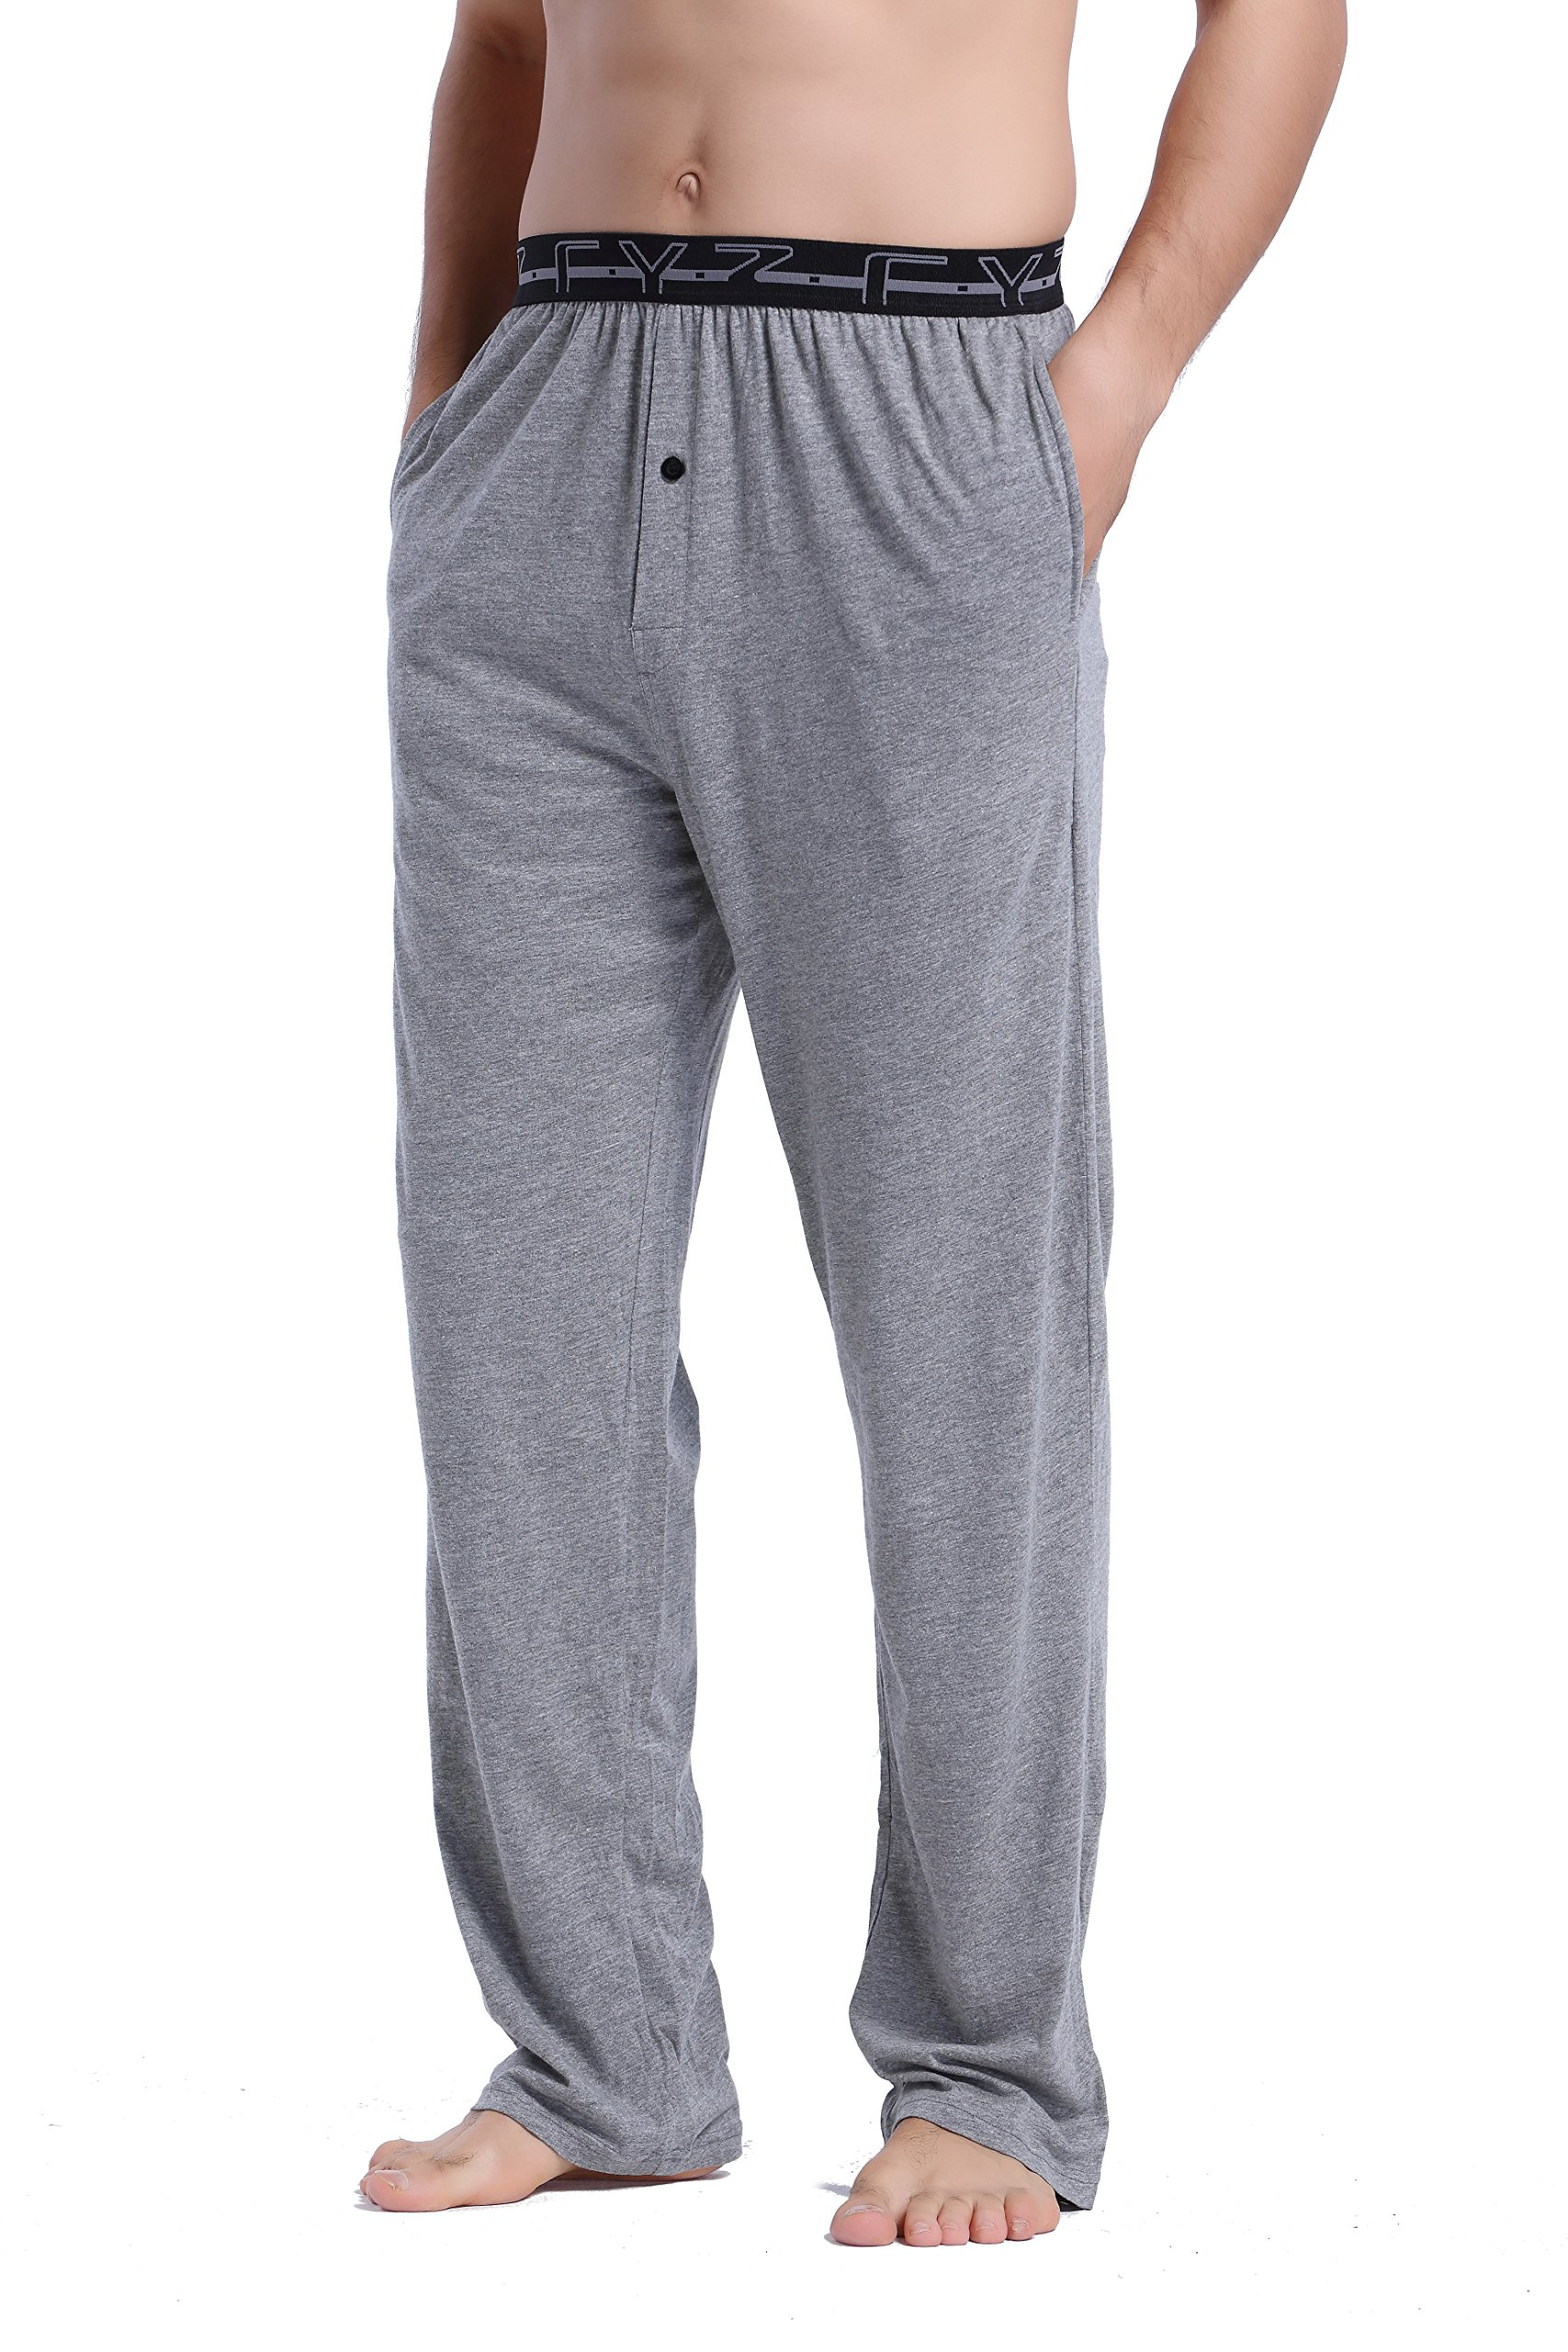 CYZ Men's 100% Cotton Jersey Knit Pajama Pants with Elastic Waistband-Darkgrey-L by CYZ Collection (Image #2)